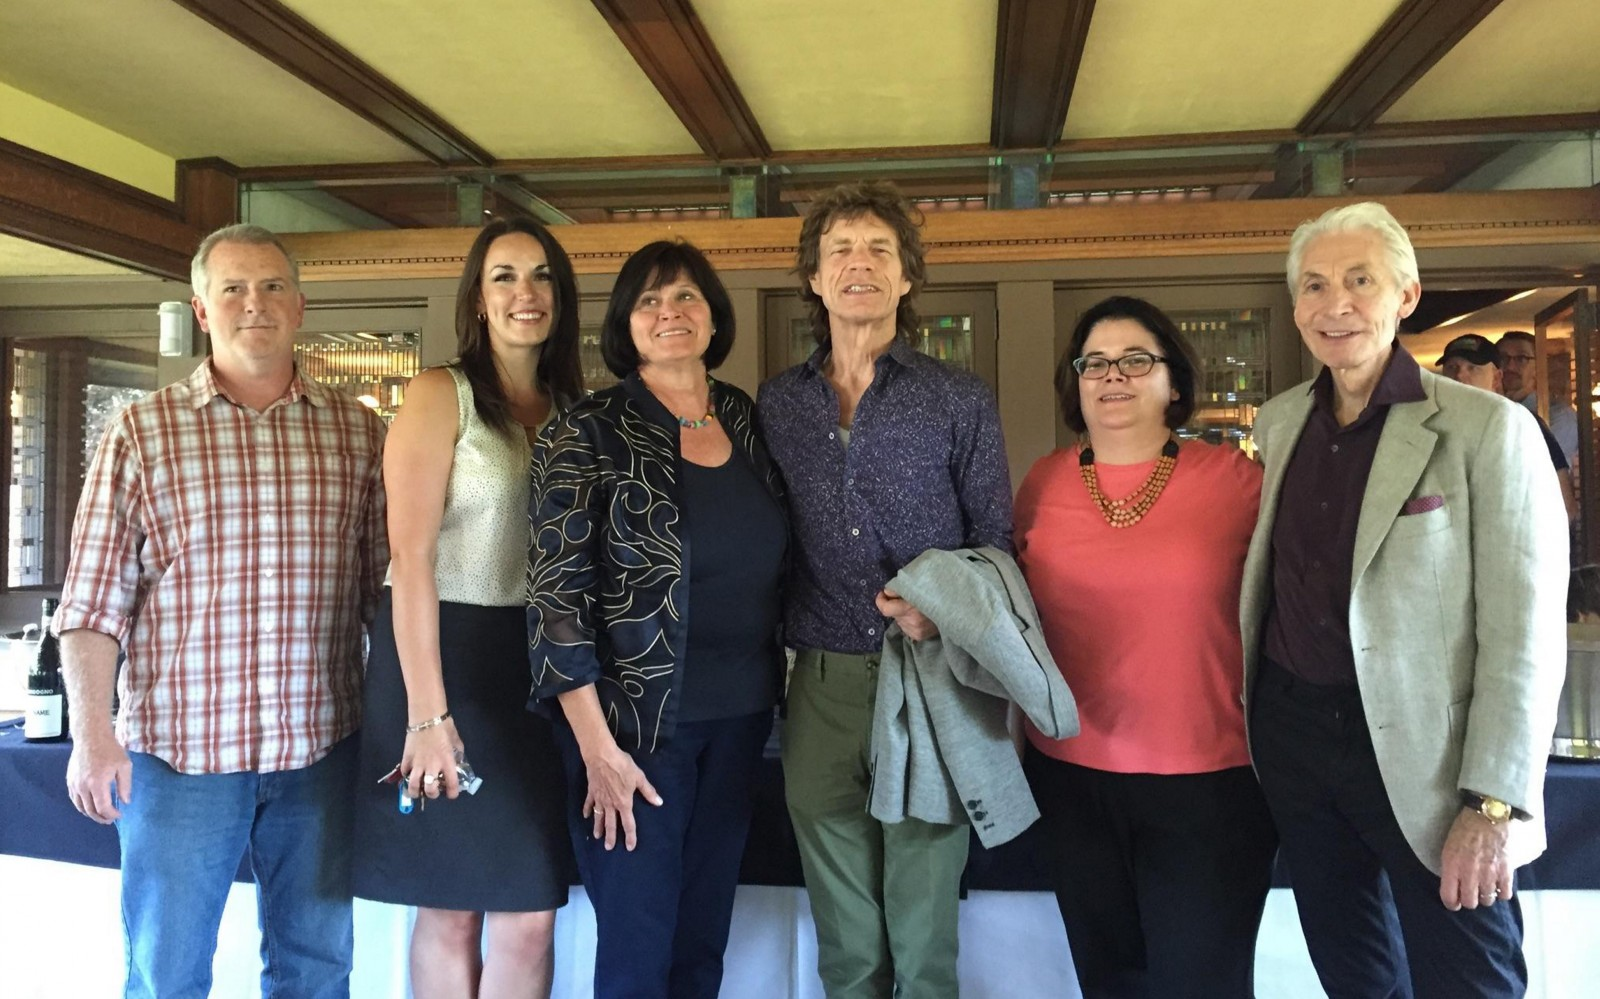 Mary Roberts, executive director of the Martin House Restoration Corp., third from left, gave a private tour Friday of the Darwin Martin complex to Mick Jagger, center, and Charlie Watts, right, of the Rolling Stones. (Photo courtesy Darwin Martin Restoration Corp.)